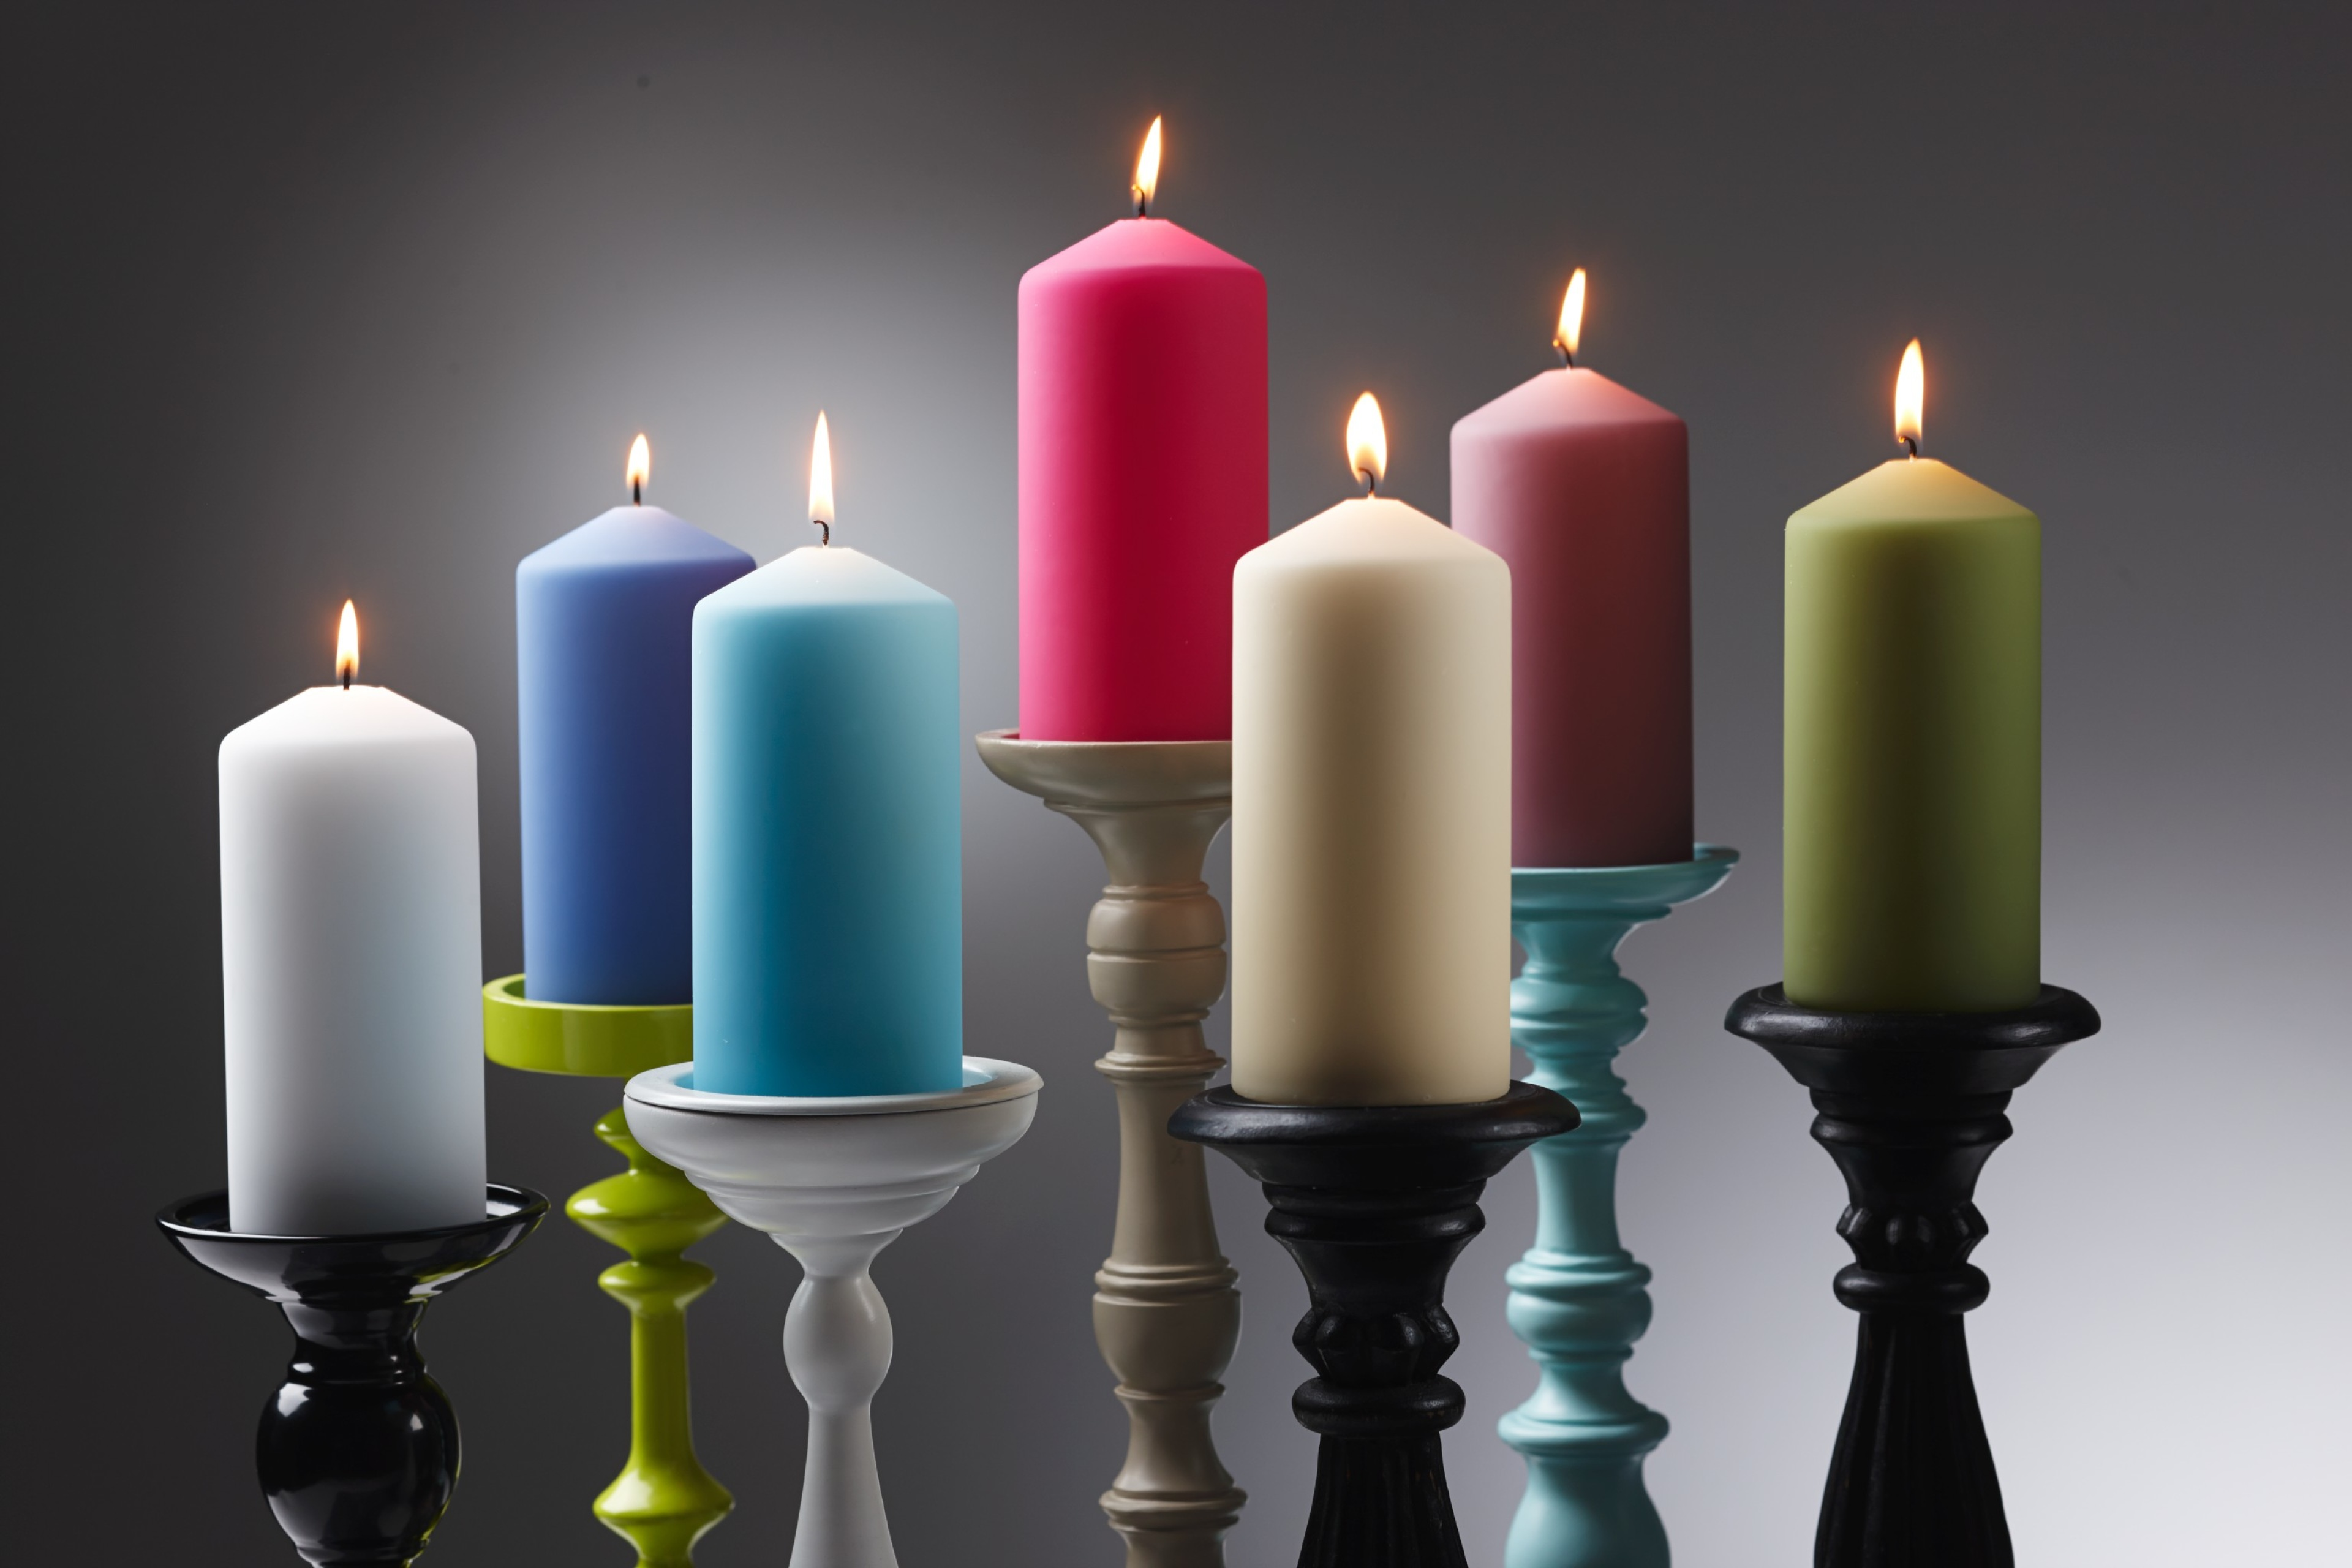 Buy Liljeholmens Candles Online From Sweden  Made in